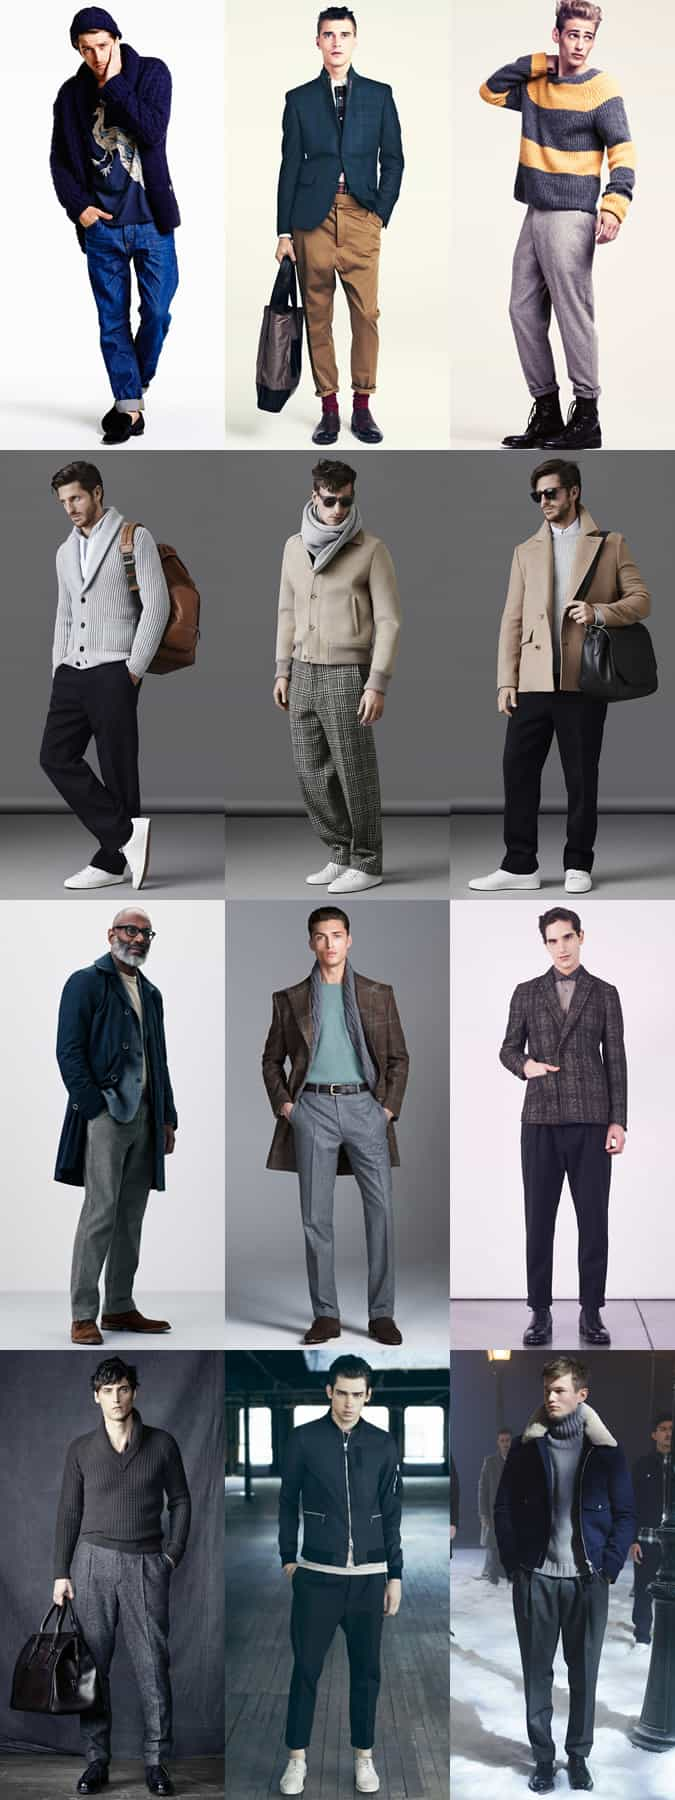 Men's Wide-Legged/Relaxed Trousers Outfit Inspiration Lookbook